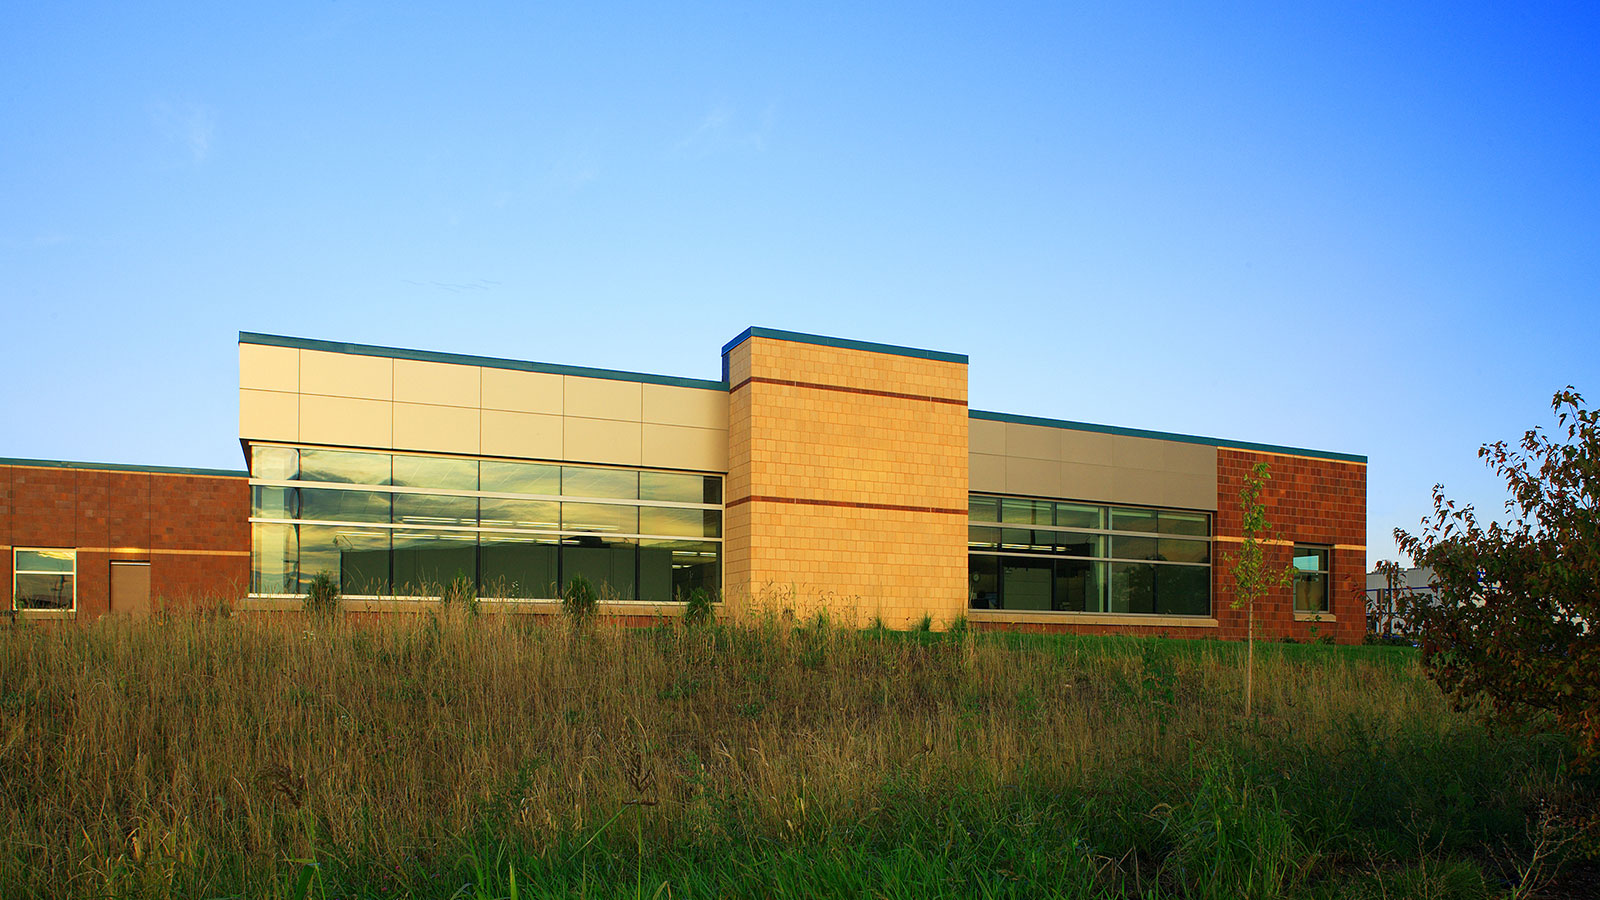 Minnesota Energy Resources Corporation Service Center